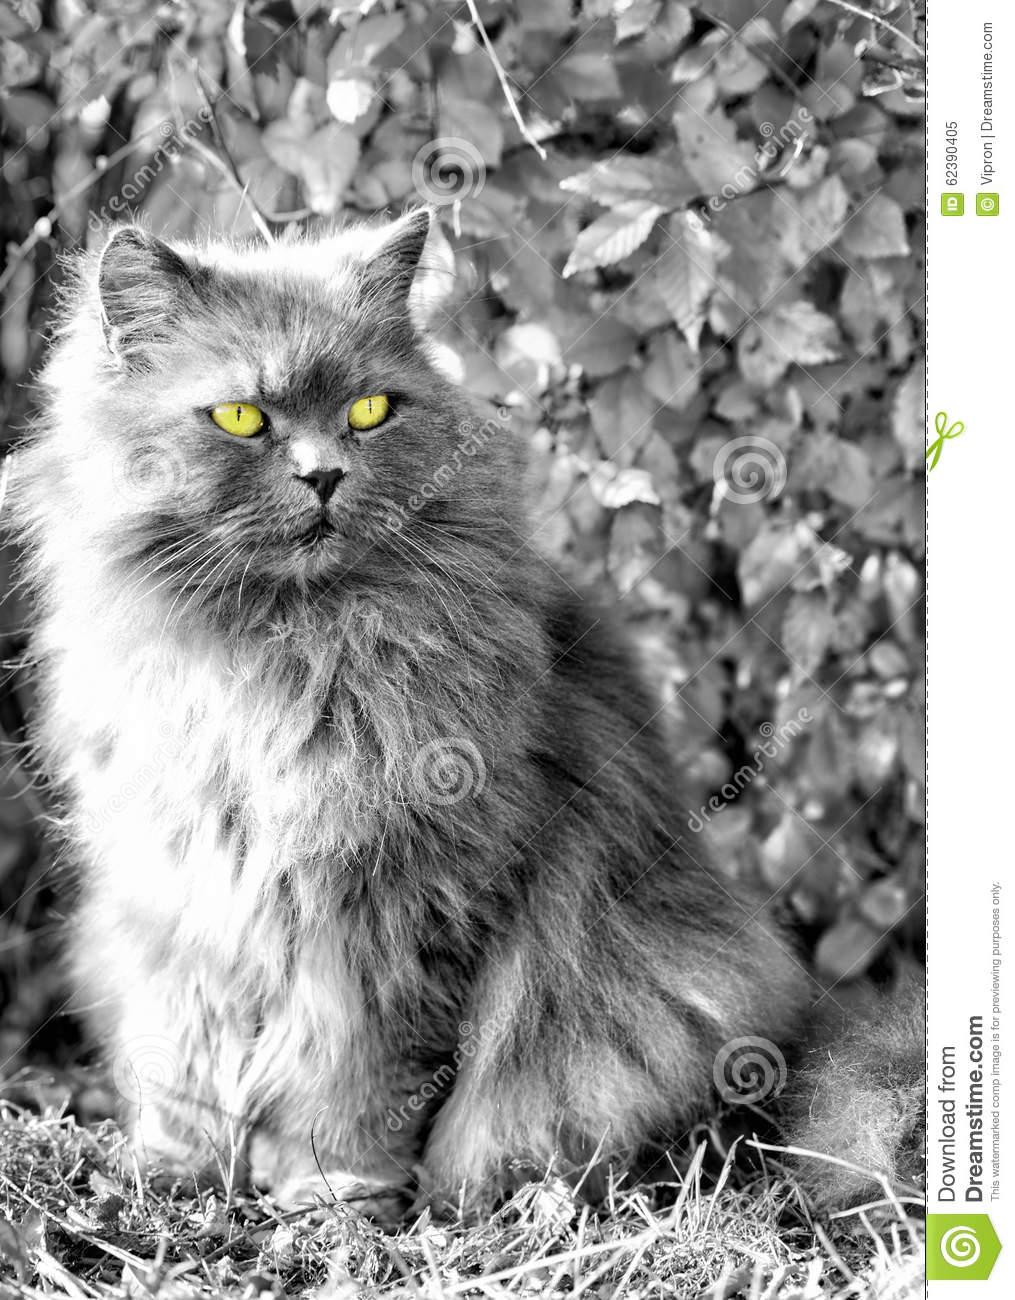 Fluffy cat looking away